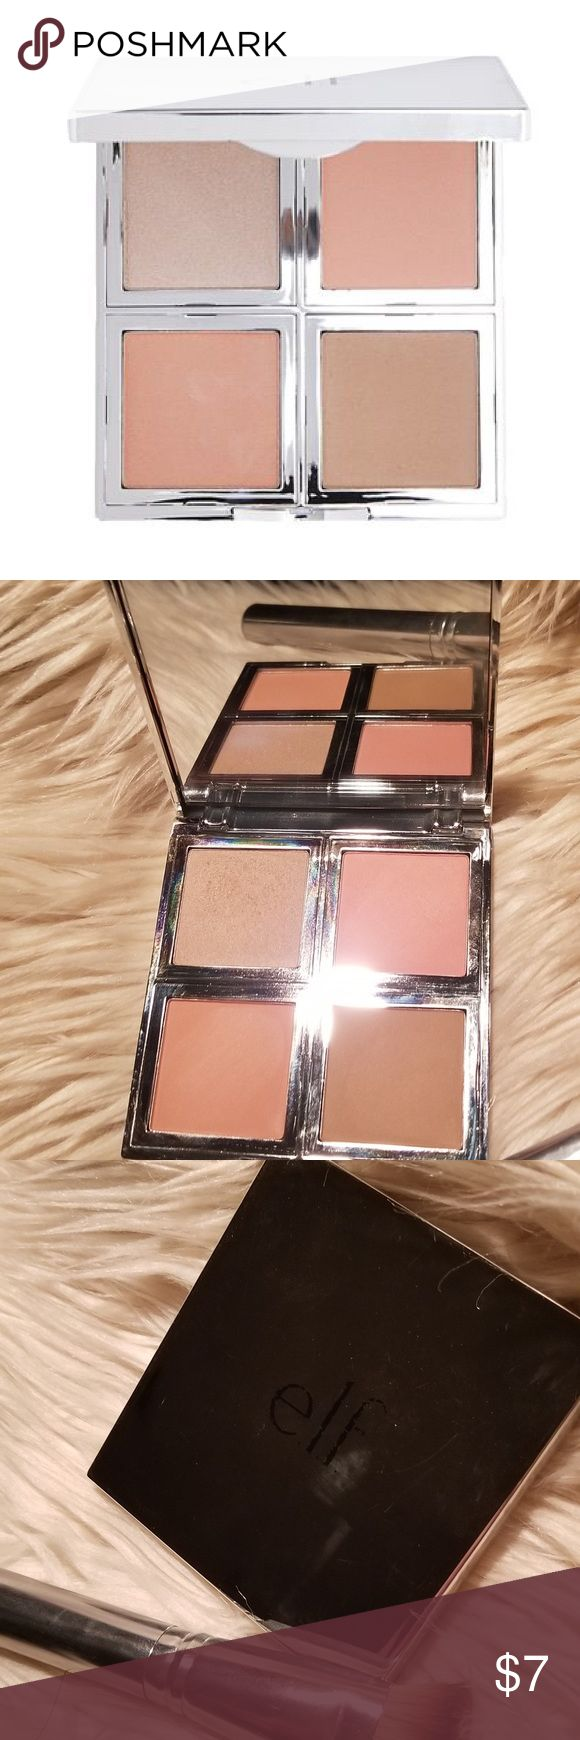 Full Face Palette for Flawless Complexion This threein